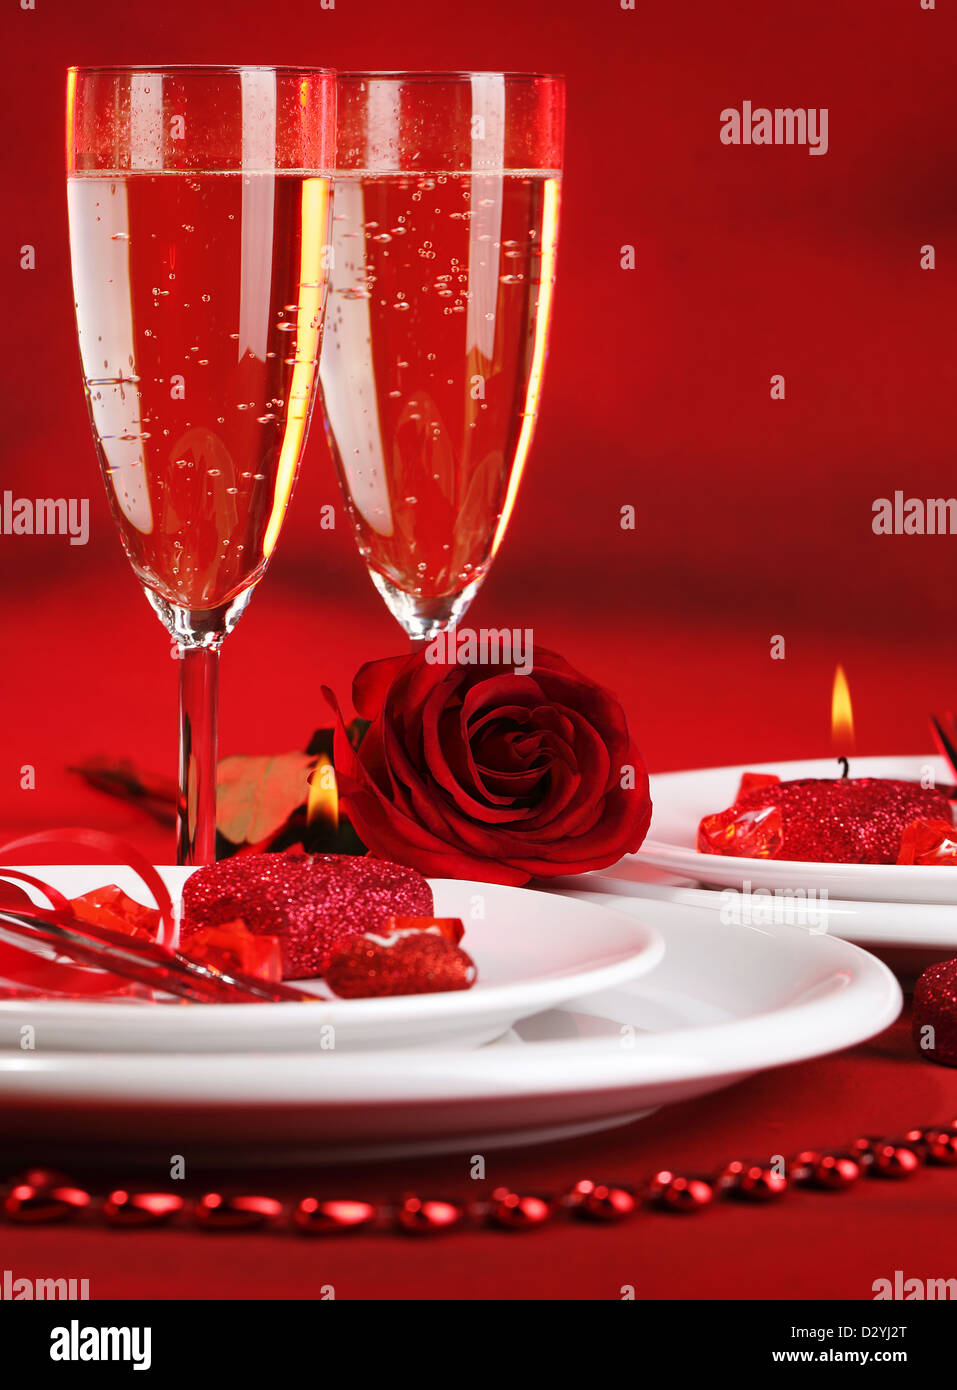 Photo of beautiful red romantic table setting white festive utensil with romantic decorations two glass of wine & Photo of beautiful red romantic table setting white festive utensil ...